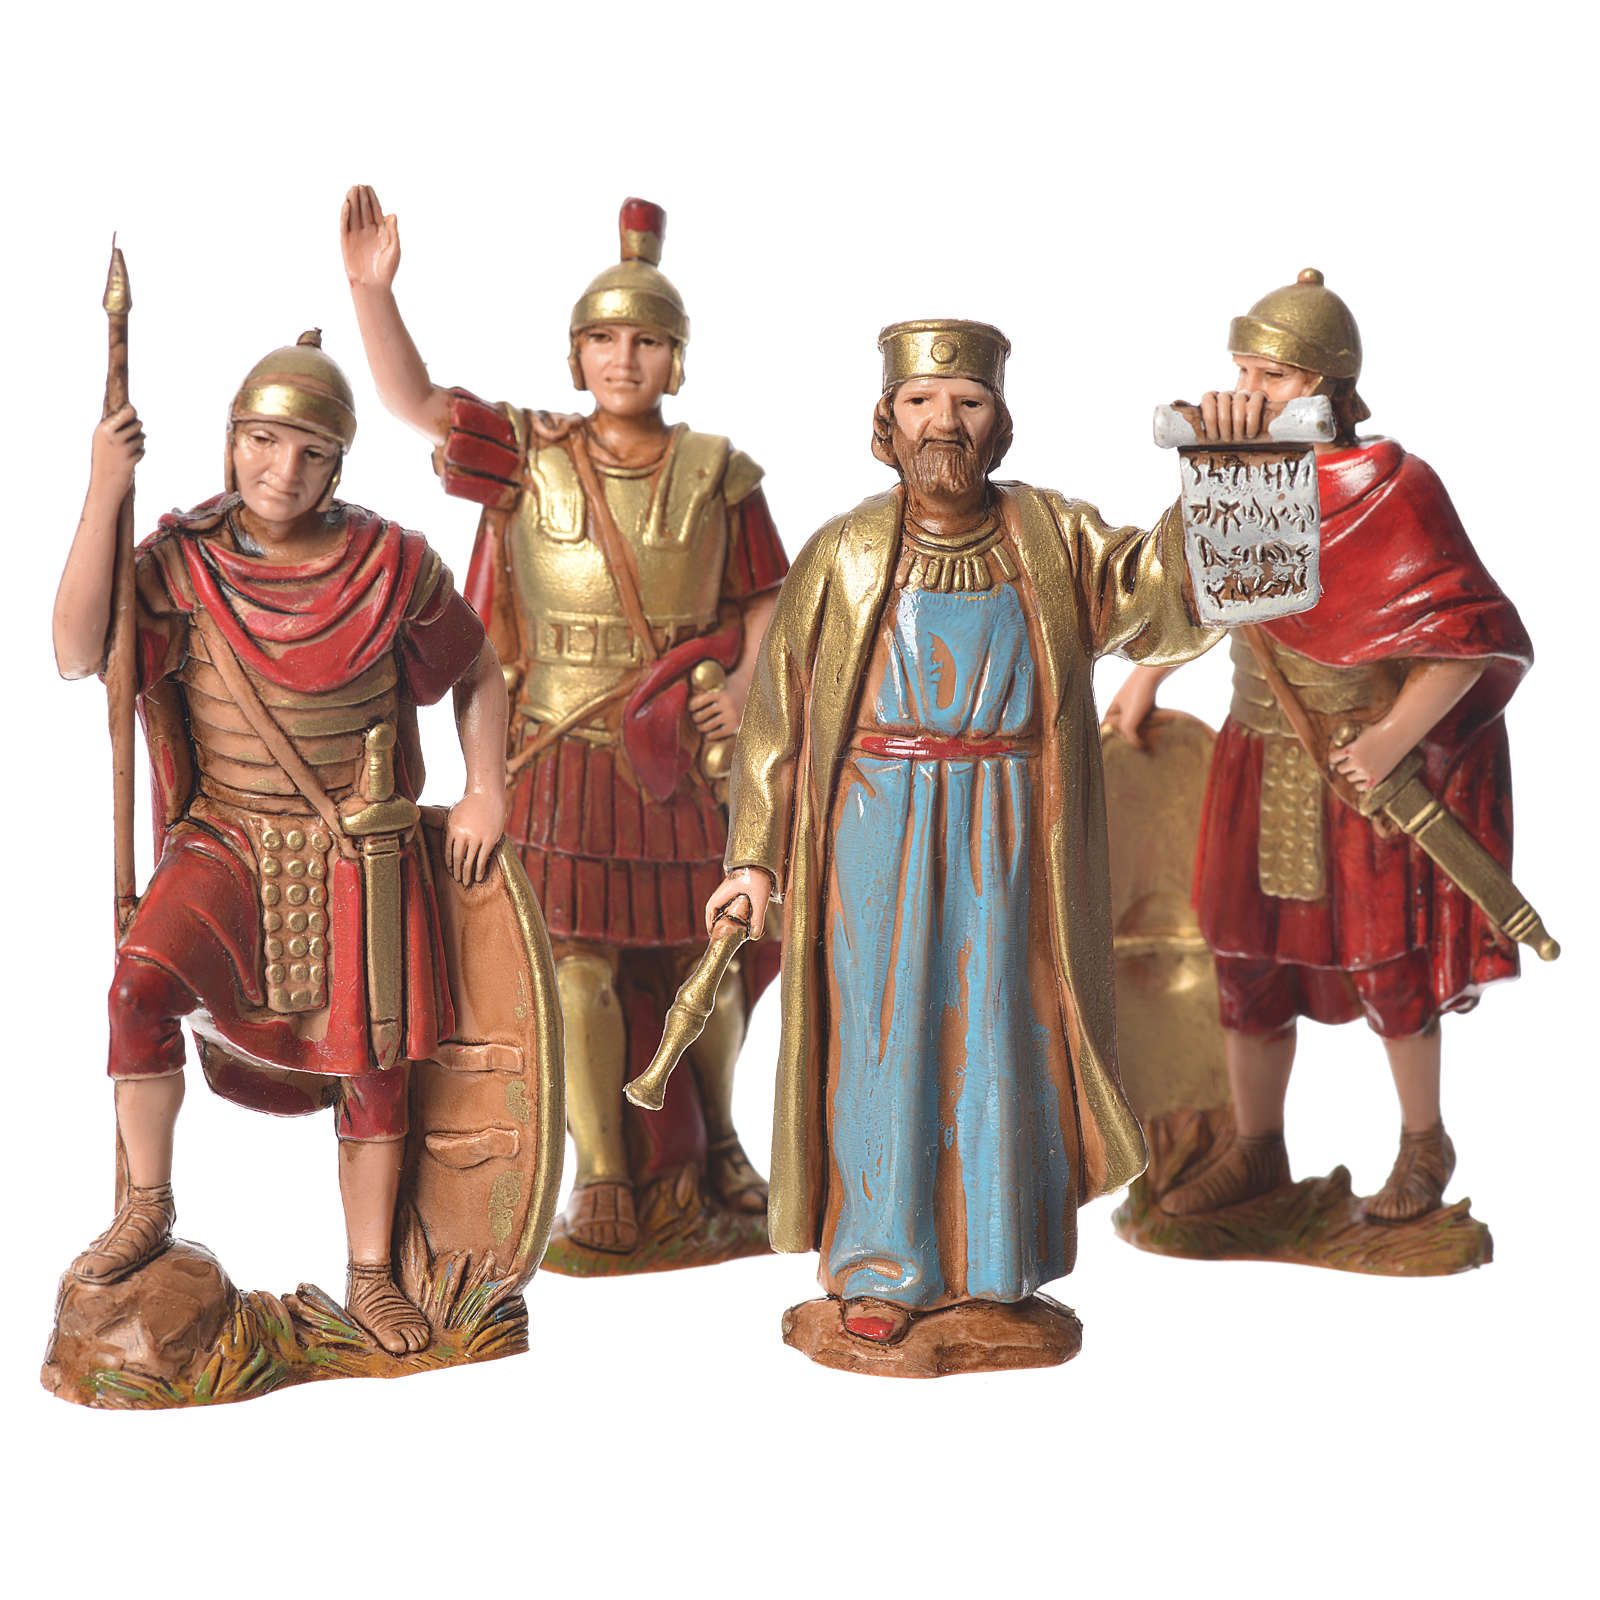 King Herod and soldiers 8cm, by Moranduzzo 4